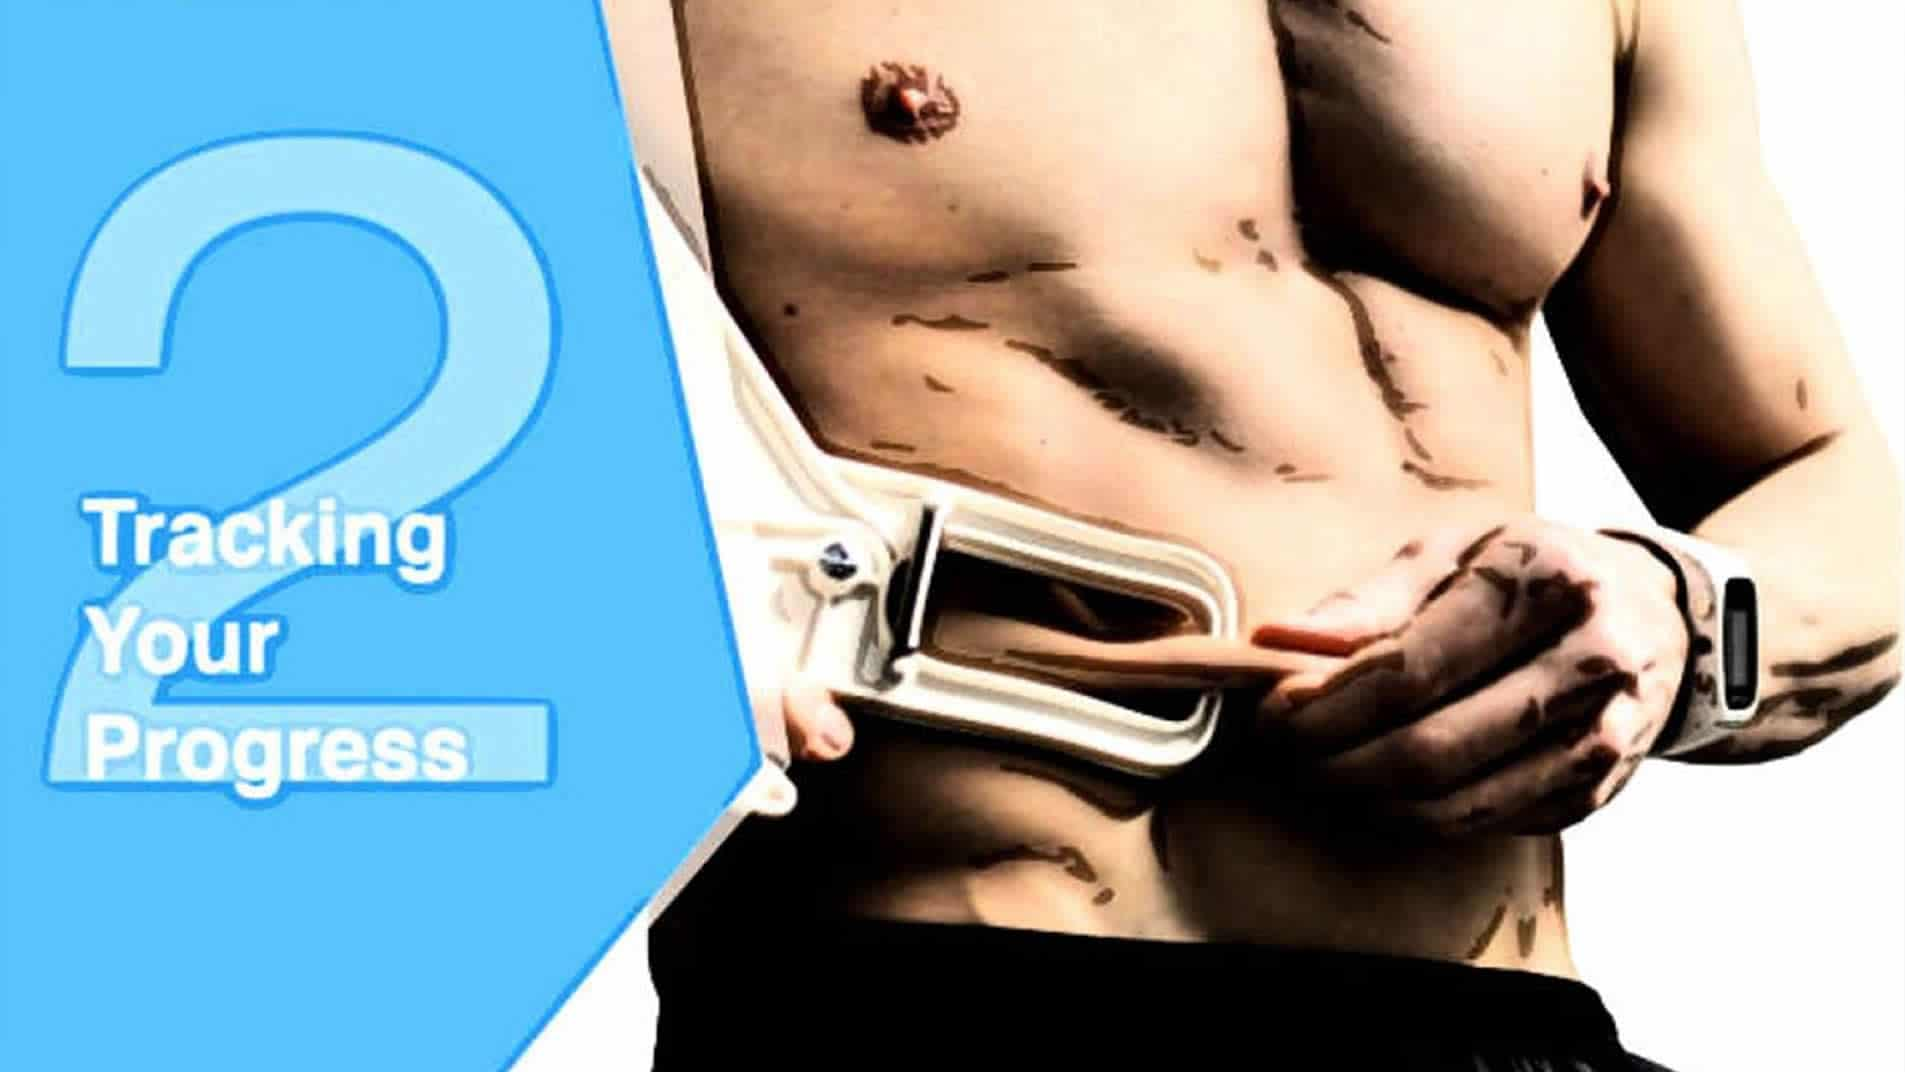 03 – [HOW MUCH BODY FAT PERCENTAGE DO I HAVE?] How To Use A Body Fat Caliper?